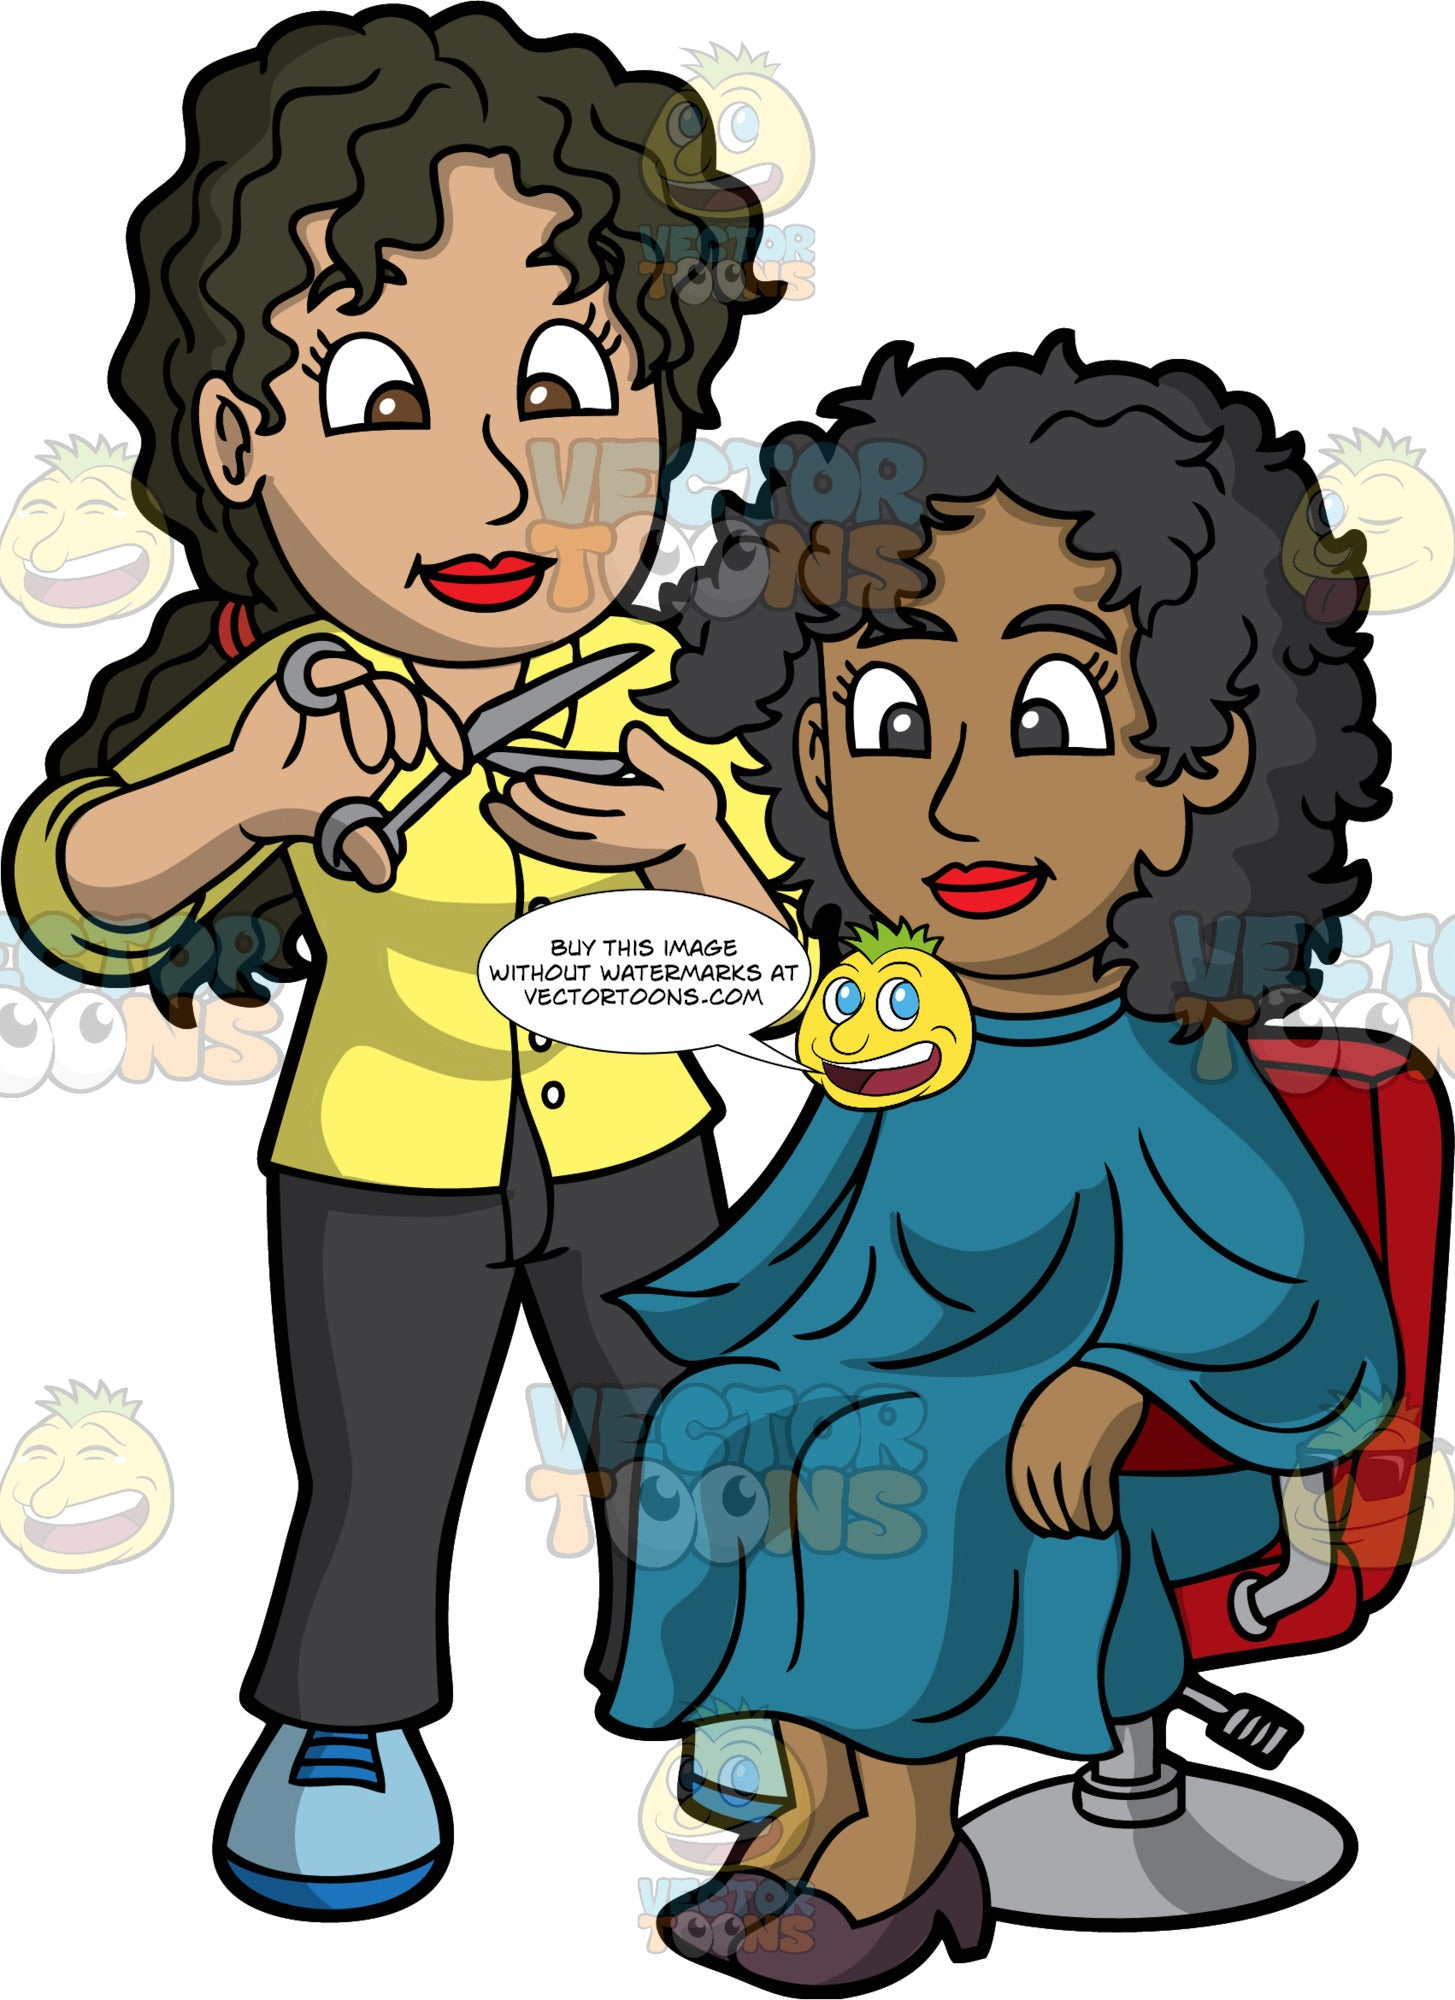 A Female Hairdresser Cutting The Hair Of A Black Woman. A female hairdresser with curly black hair tied in a ponytail, wearing a yellow long sleeves blouse with buttons, black pants, blue shoes, cutting the hair of a black woman sitting on a red salon chair, wearing a teal salon cape gown, dark brown heels, using a pair of stainless scissors